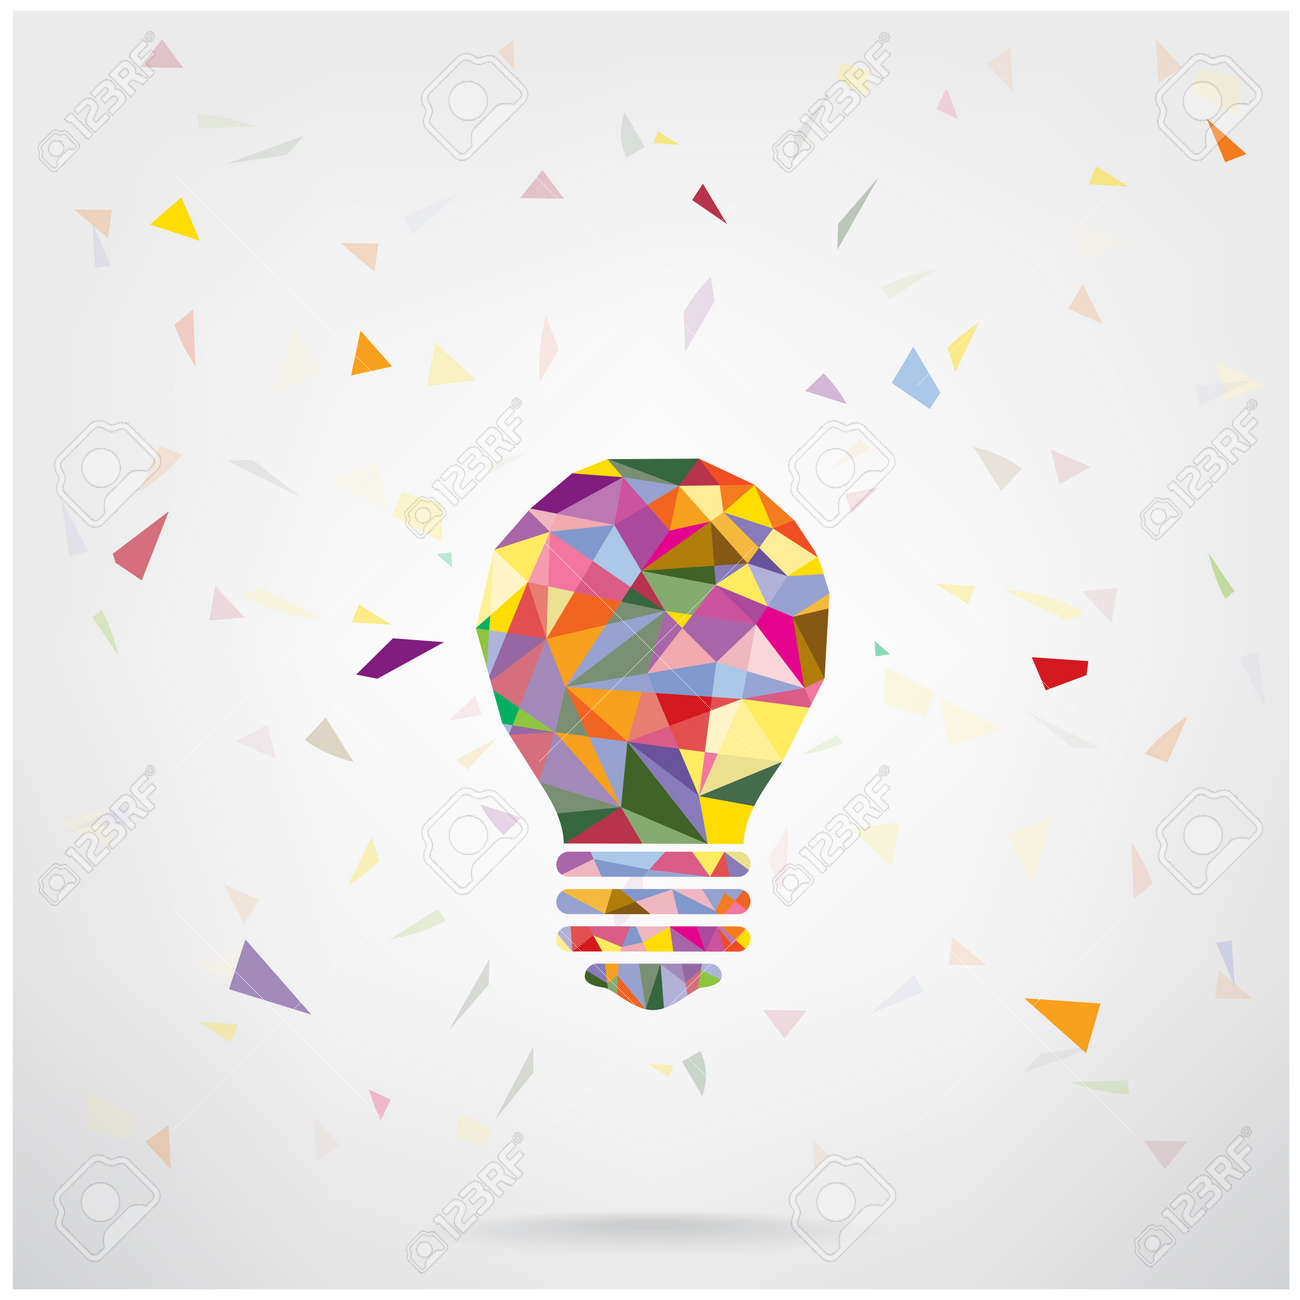 Idea Design a roundup of ideas about the making of web products Vector Creative Light Bulb Idea Concept Background Design For Poster Flyer Cover Brochure Business Idea Abstract Backgroundvector Illustration Contains